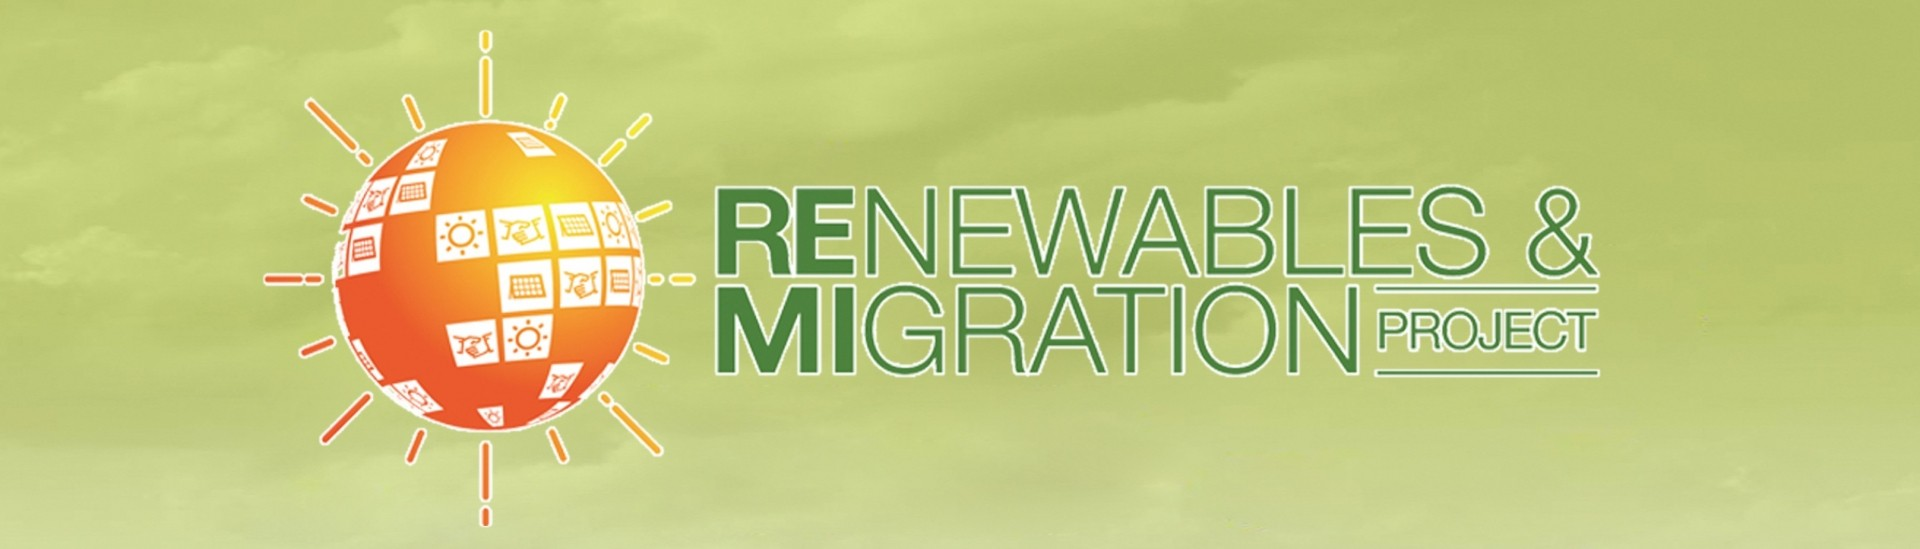 Renewables, Power Generation from Solar Energy Project & Migration Promotion Film